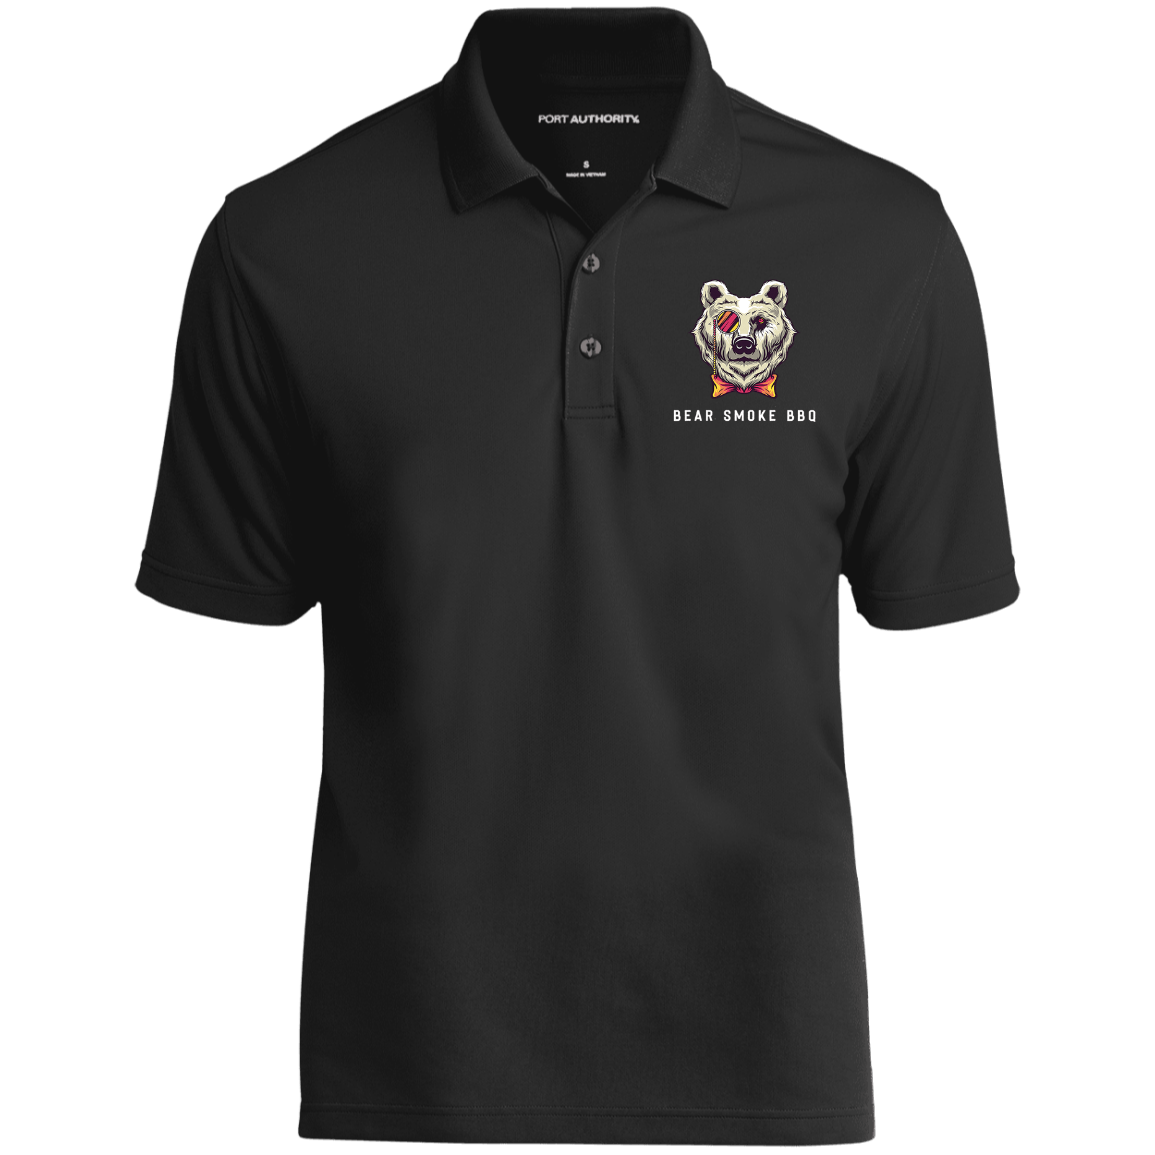 K110 Dry Zone UV Micro-Mesh Polo - Bear Smoke BBQ